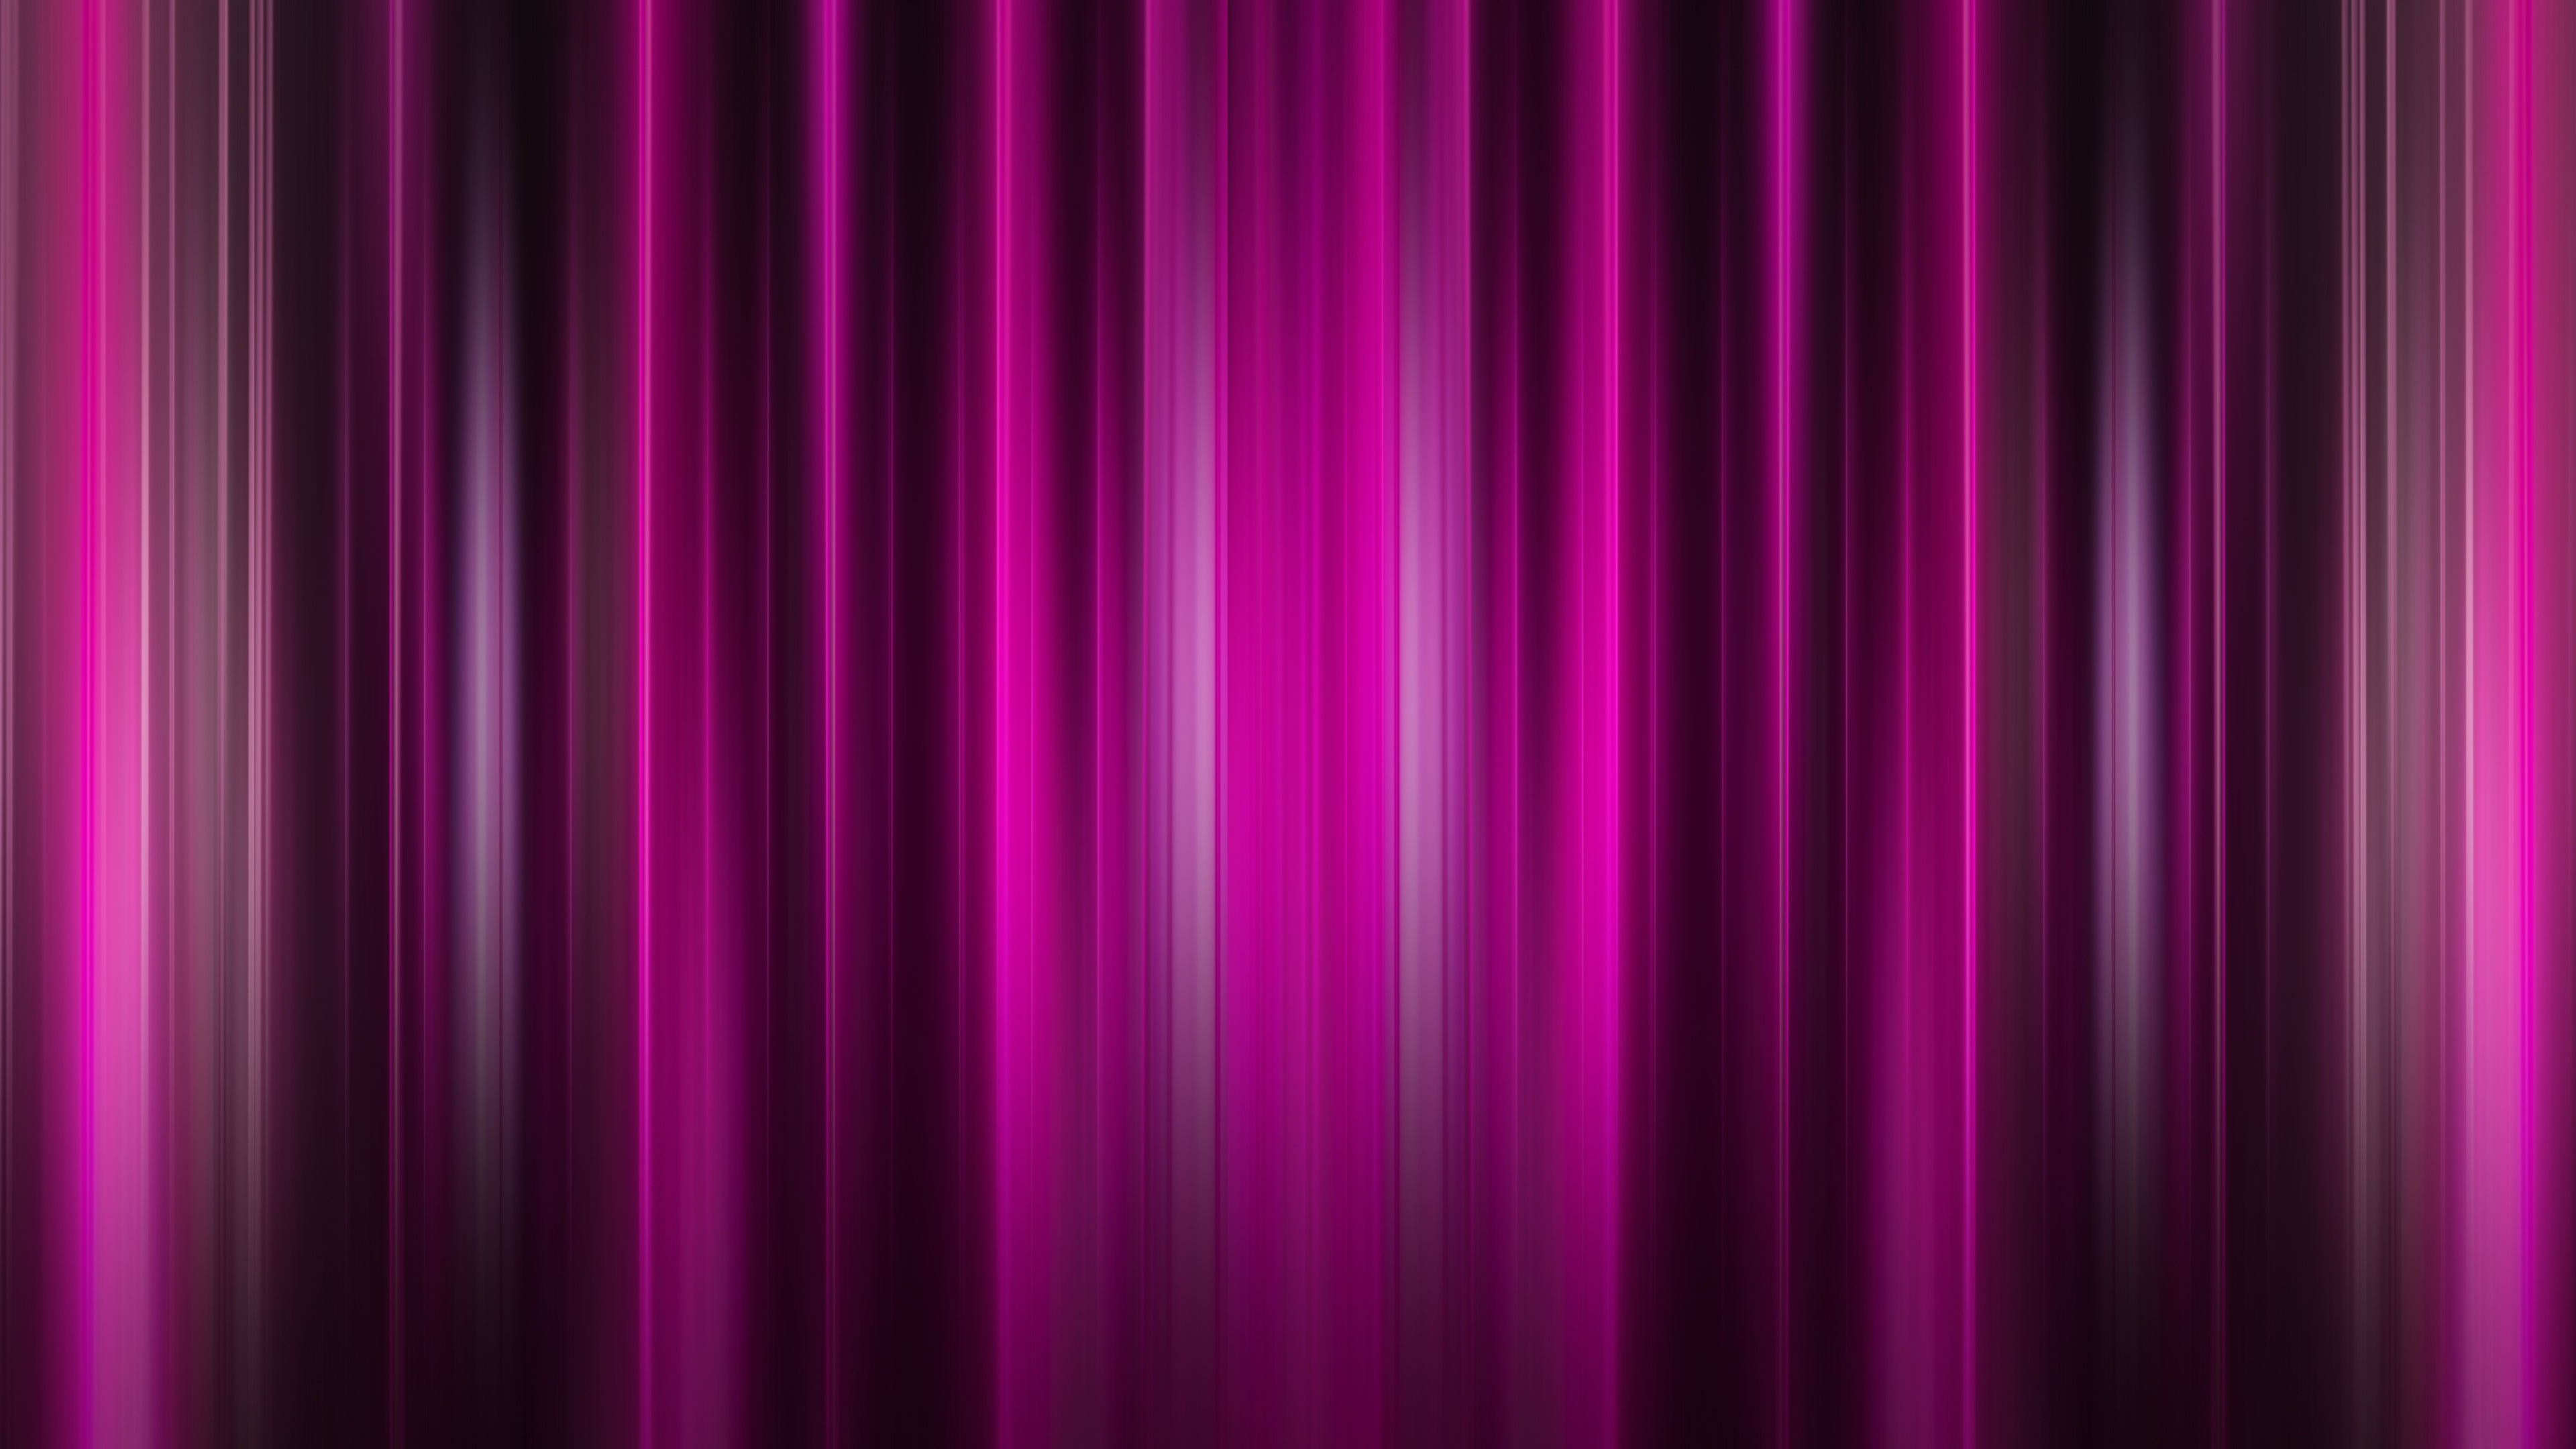 abstract pink lines background 4k 1539371249 - Abstract Pink Lines Background 4k - stripes wallpapers, pink wallpapers, lines wallpapers, hd-wallpapers, abstract wallpapers, 4k-wallpapers